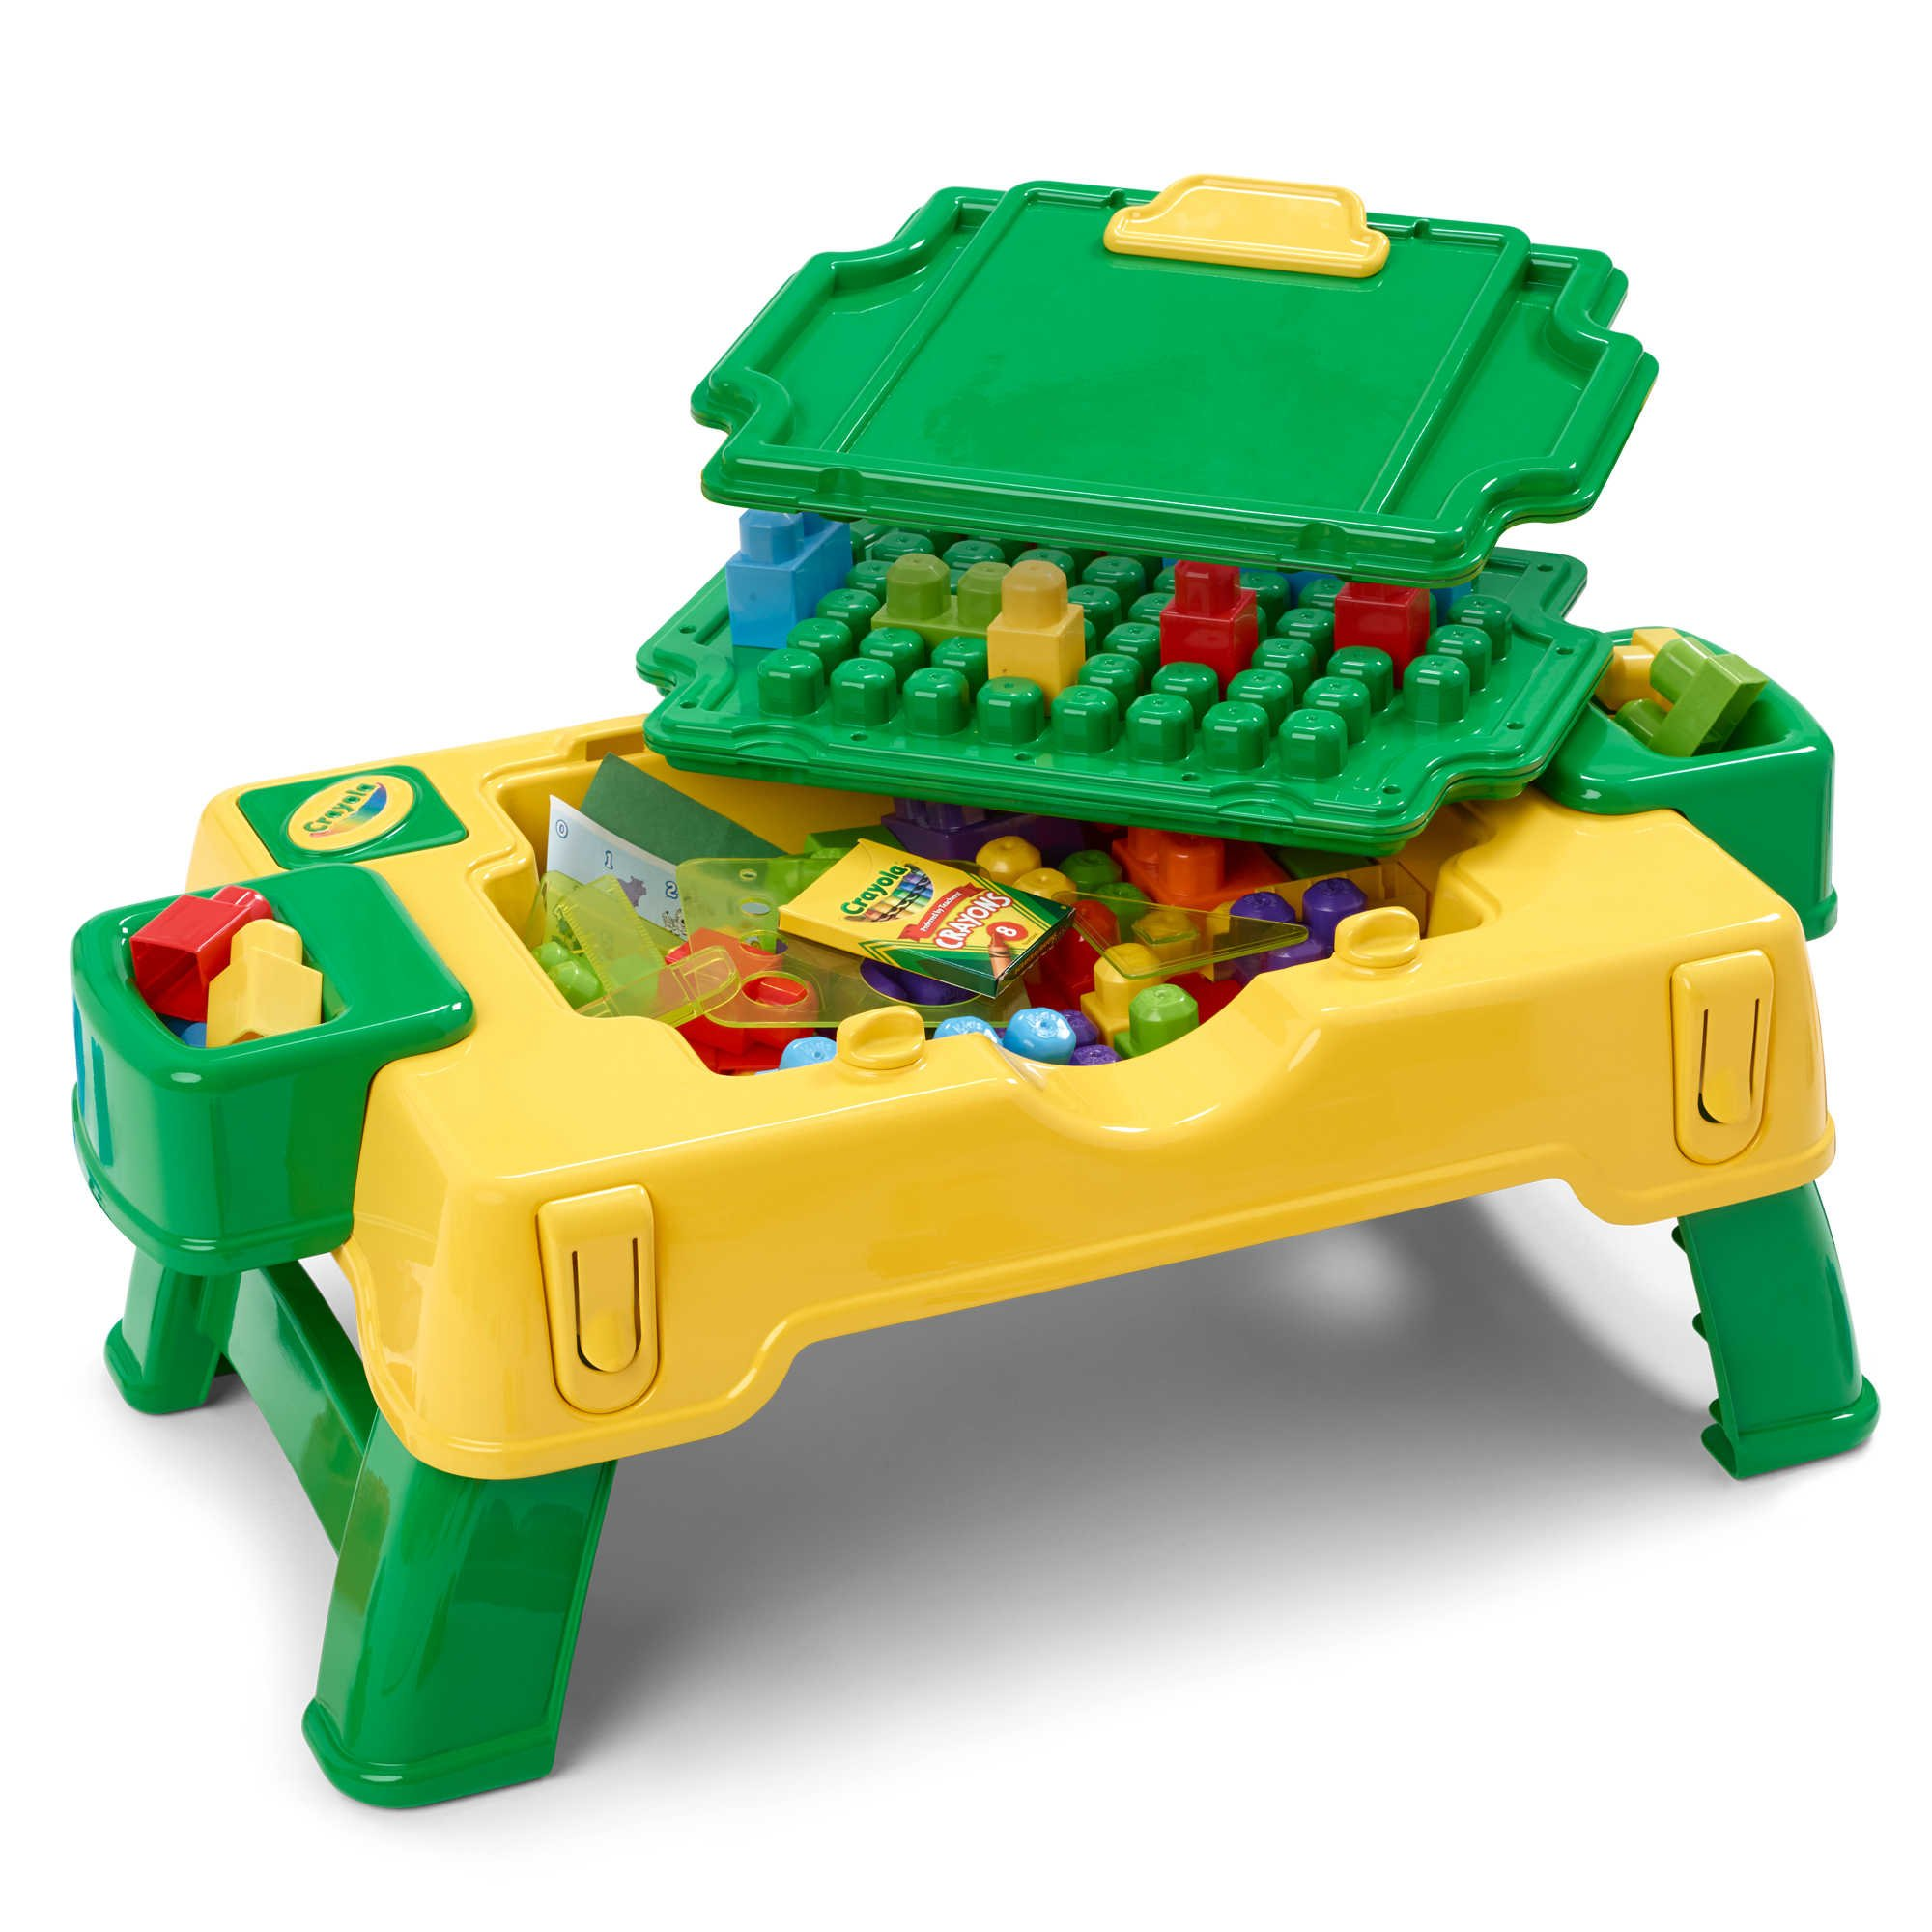 Super Fun Building Blocks 30-Piece 2-in-1 Activity Table By Crayola, Suitable For Ages 3-6 Years